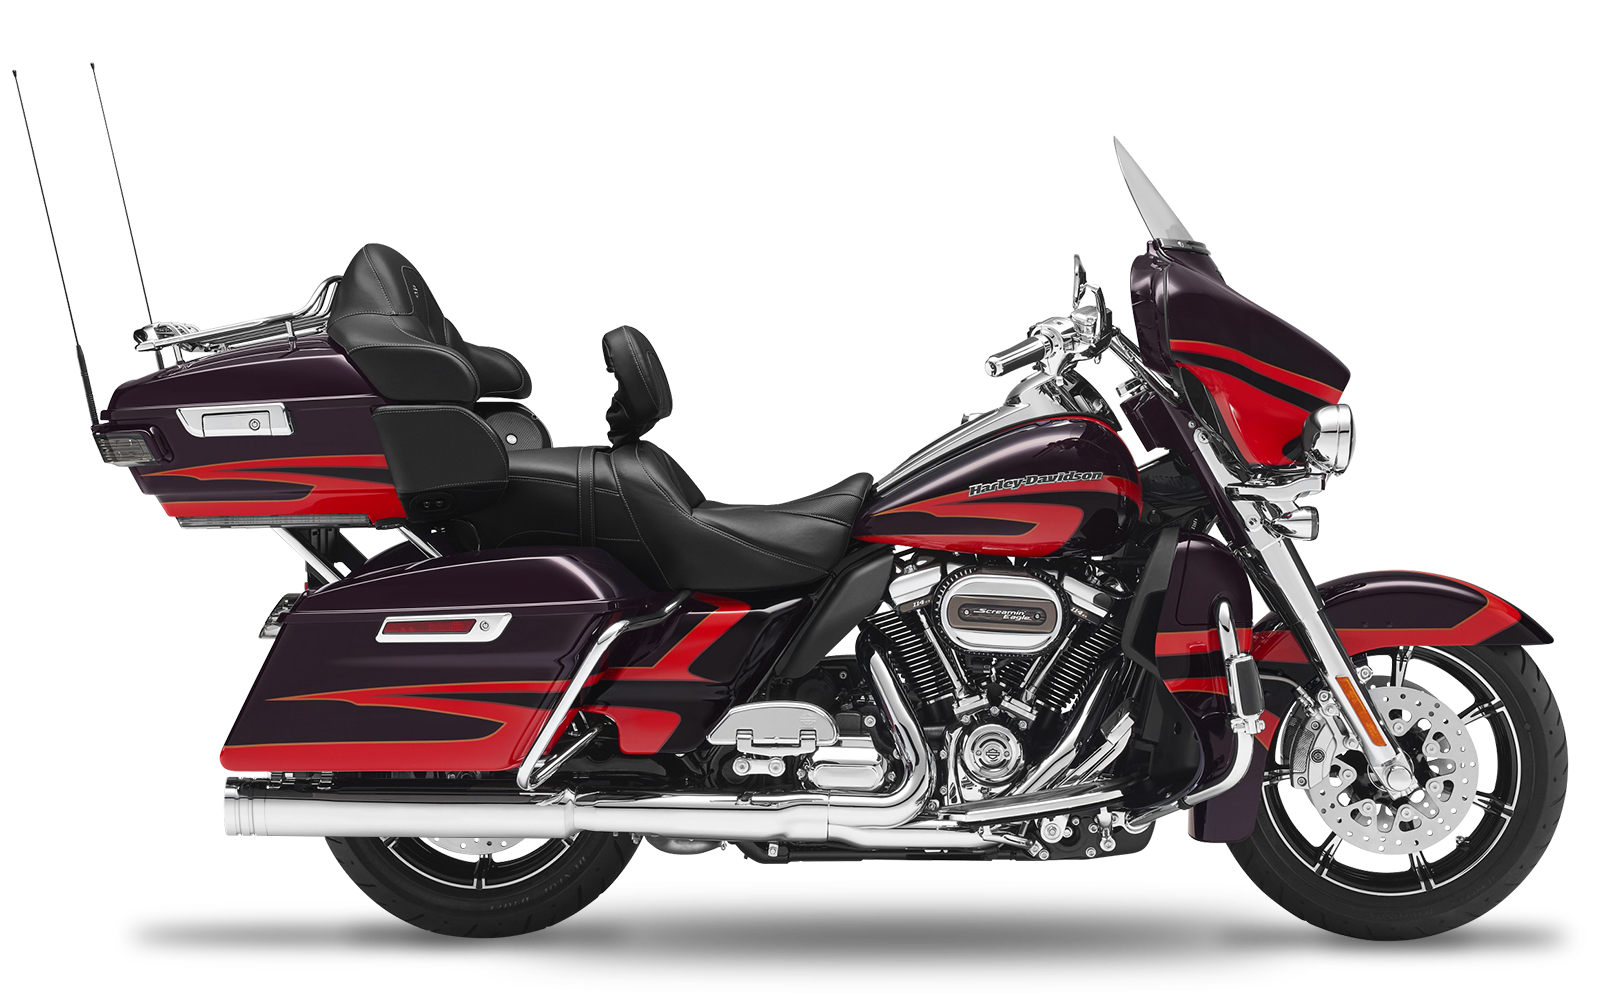 Touring - Electra Glide Standard - ME107 - 2021 - Slipons